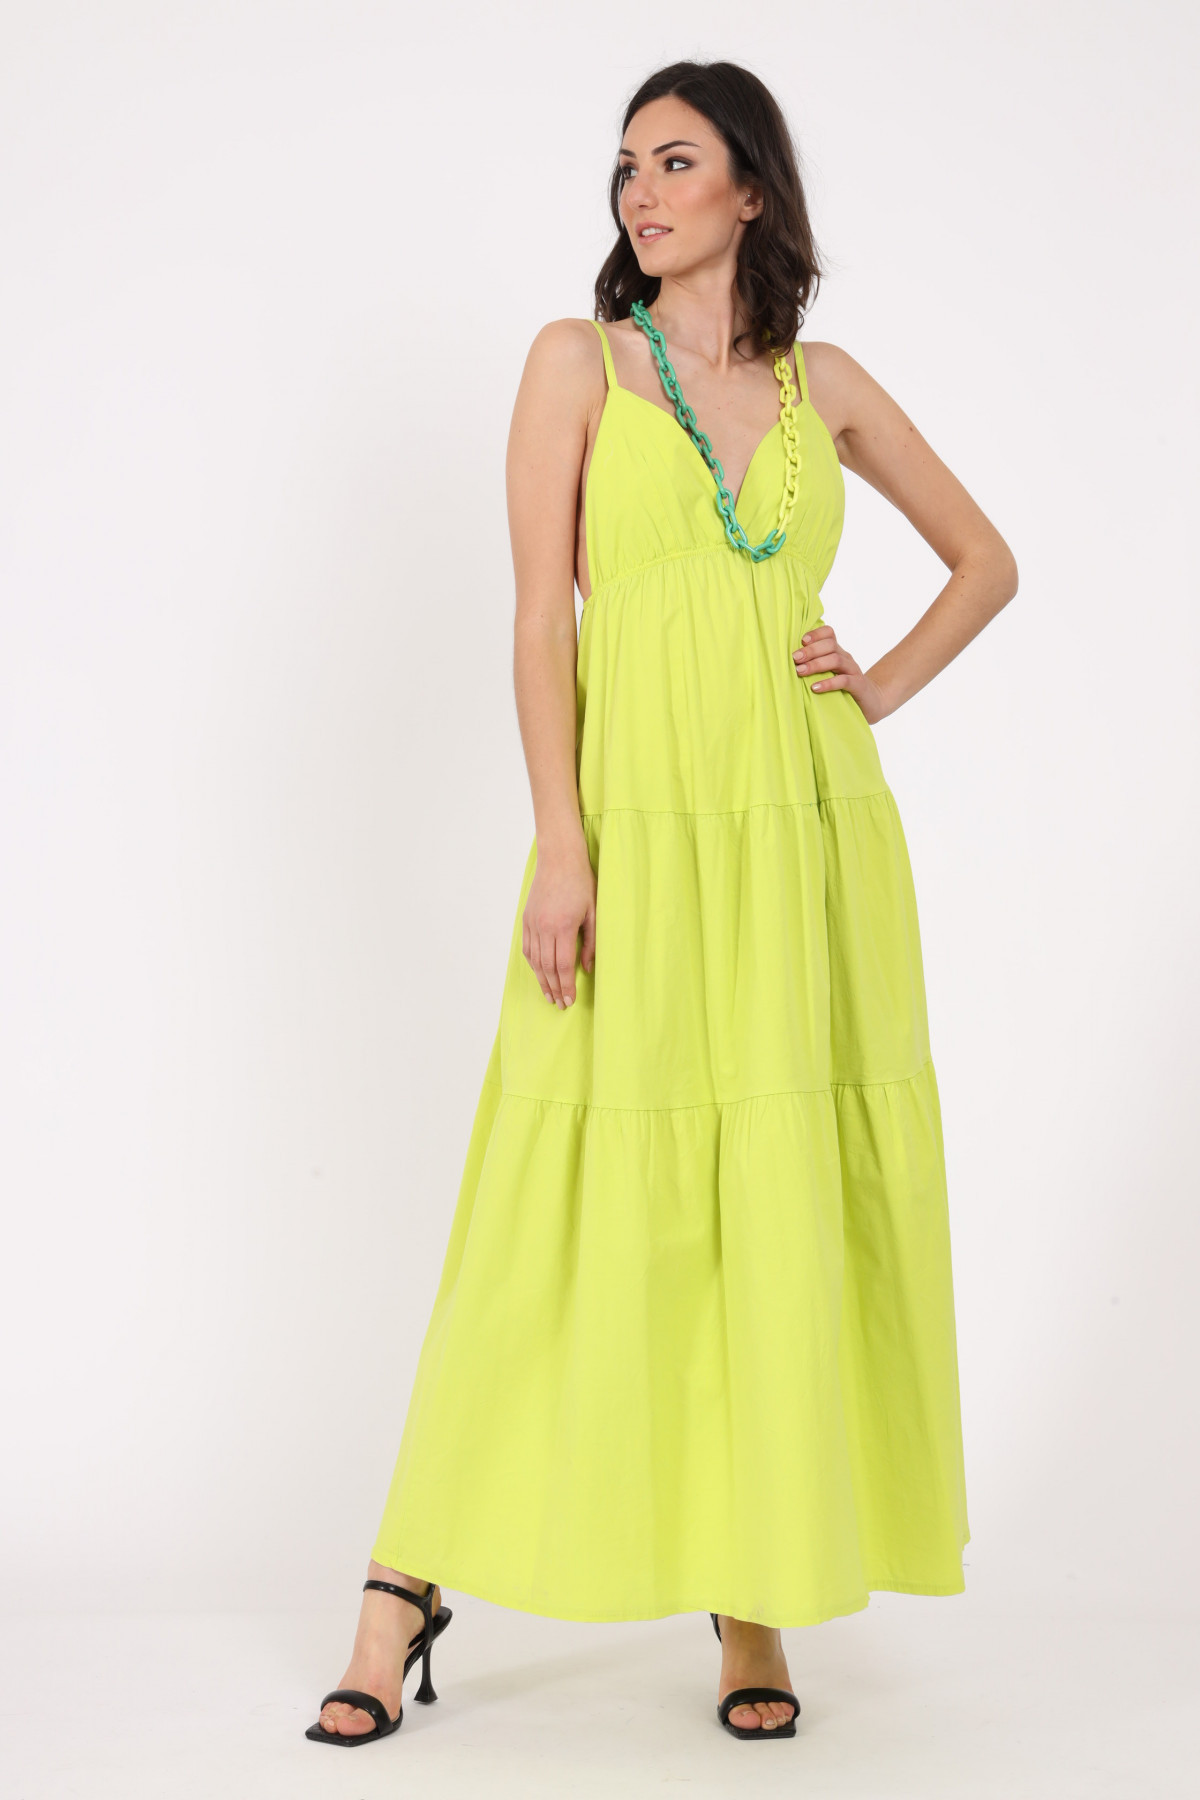 Dress with thin straps and flounces